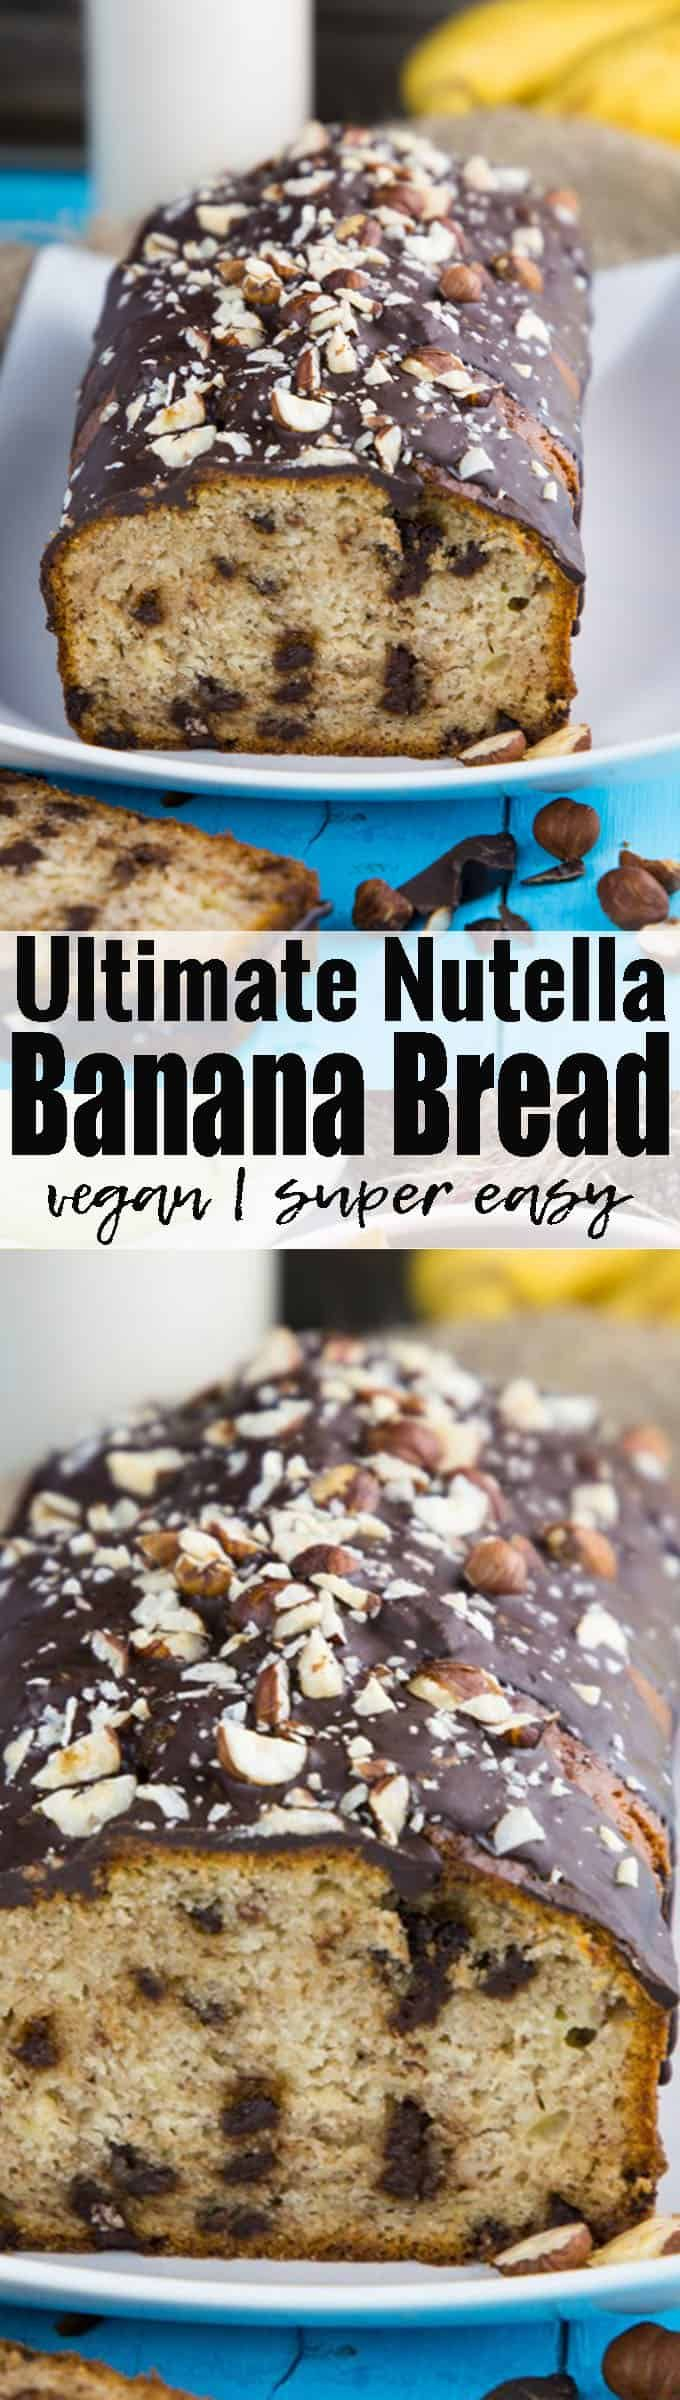 Making banana bread without butter and eggs is super easy! This vegan banana bread with chocolate and chopped hazelnuts is one of my all-time favorites! Chocolate heaven, here I come!! Find more vegan recipes at veganheaven.org ! <3